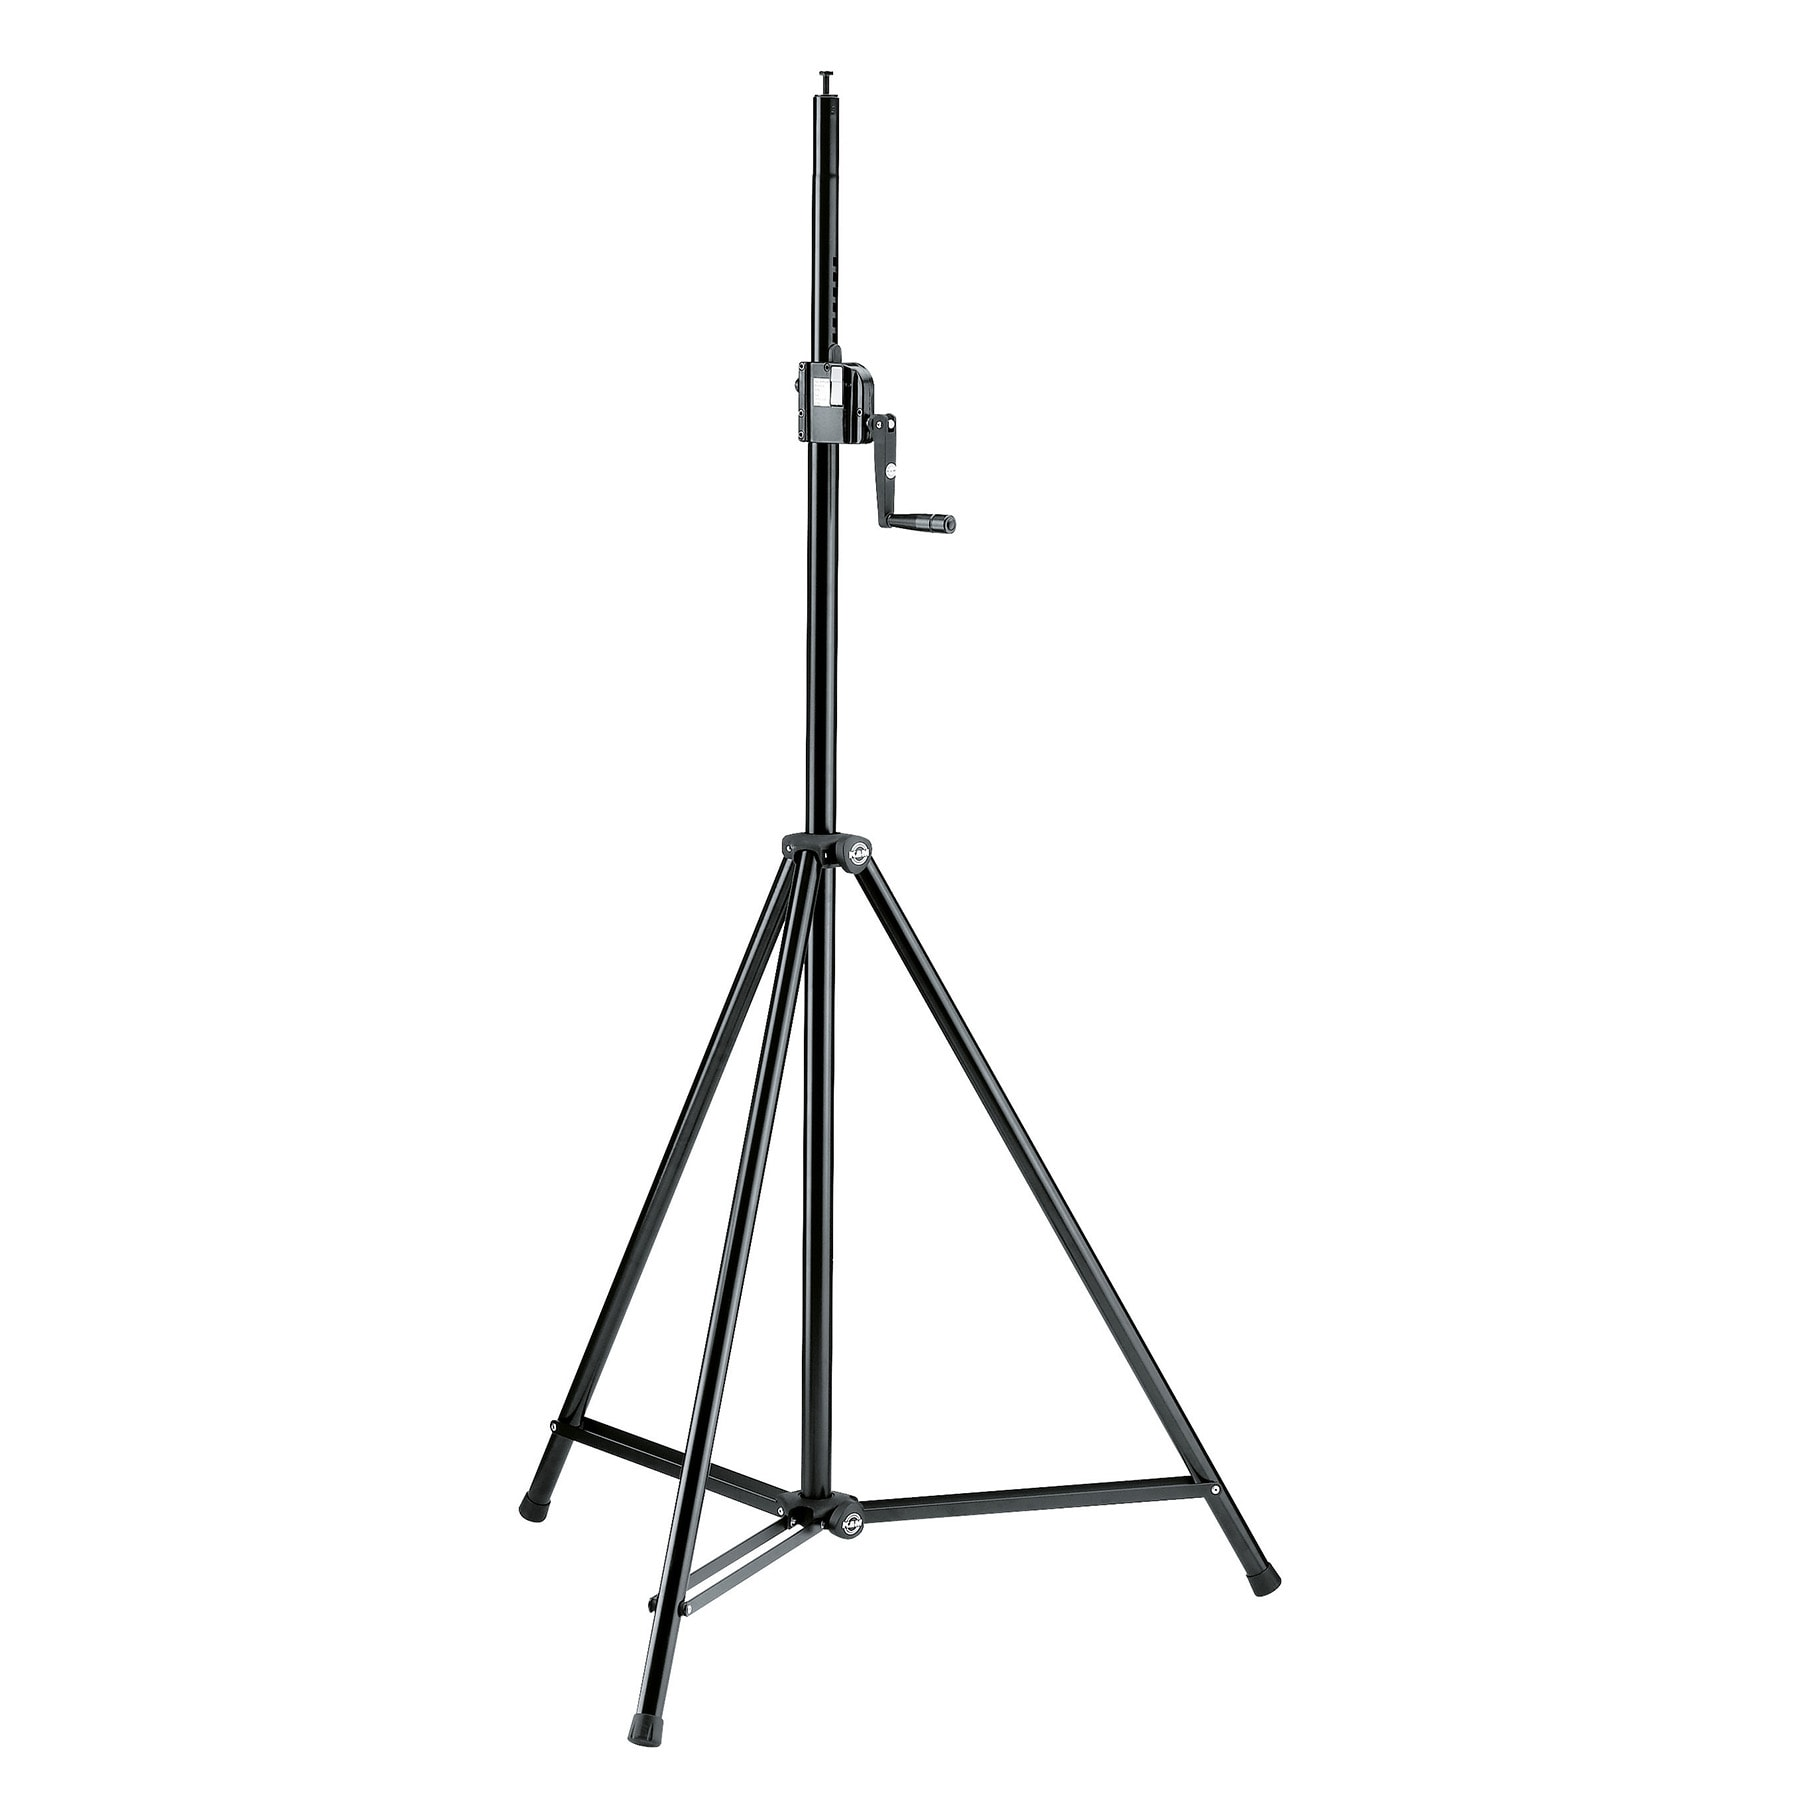 KM246_1 - Lighting/speaker stand